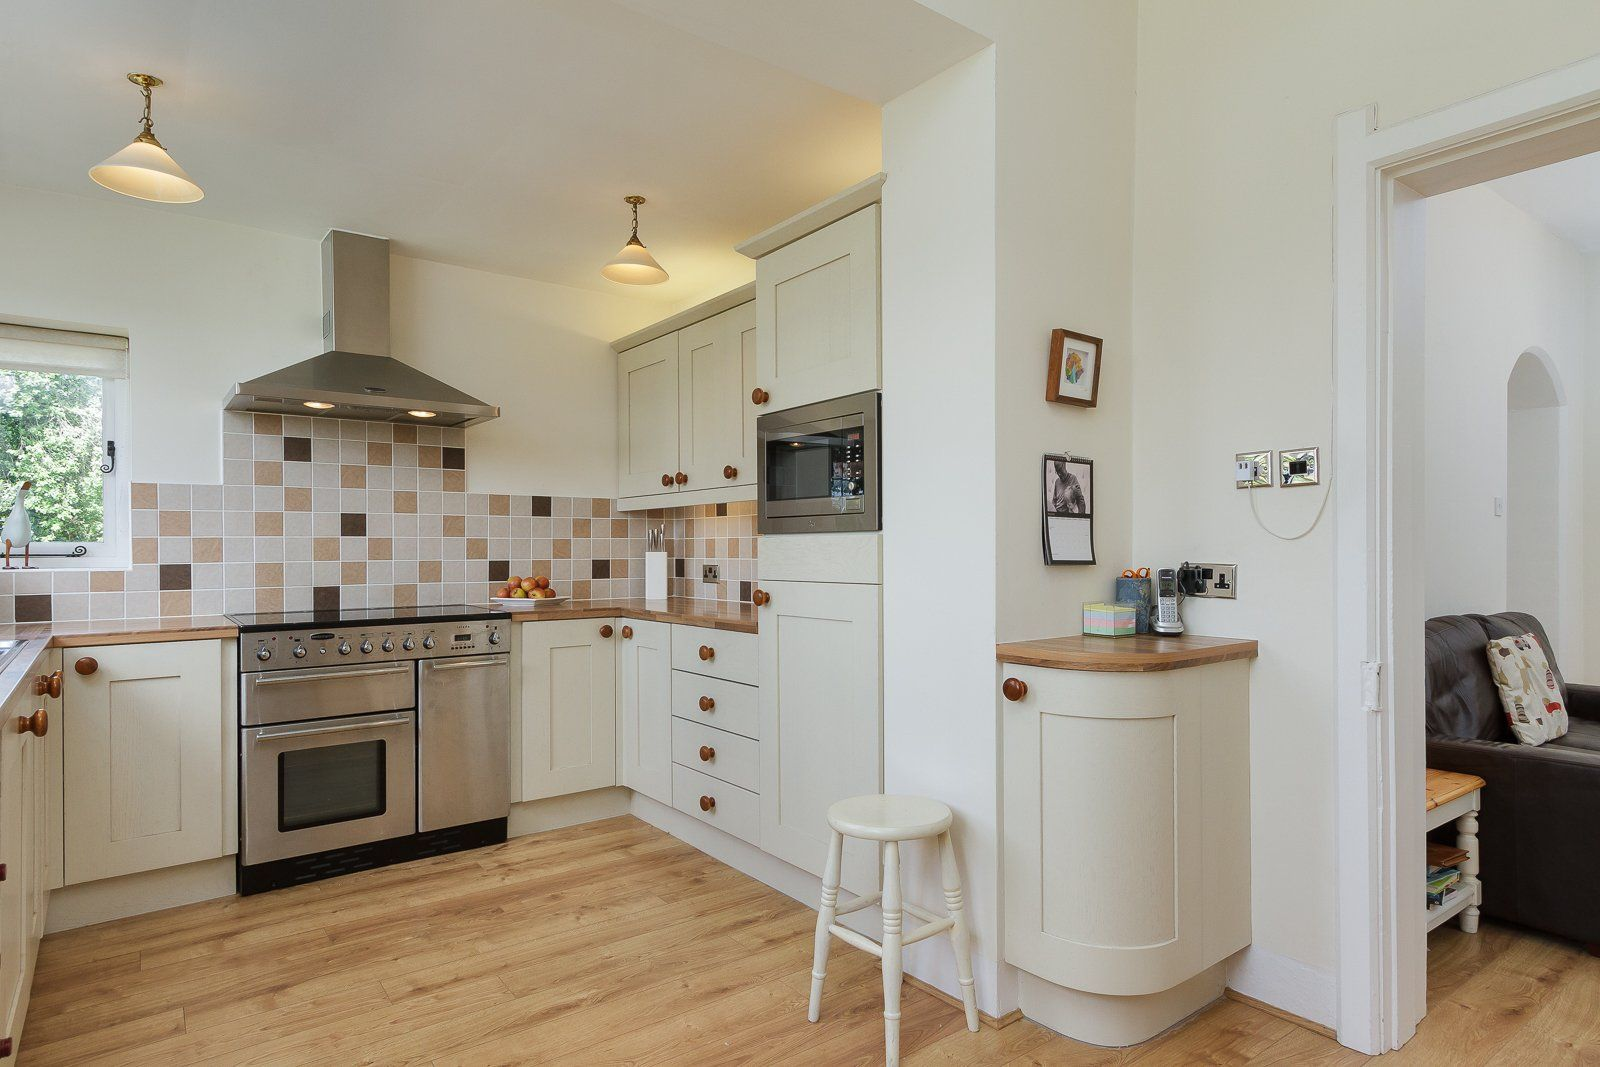 6 bedroom Detached for sale in Whitegate Luxury homes